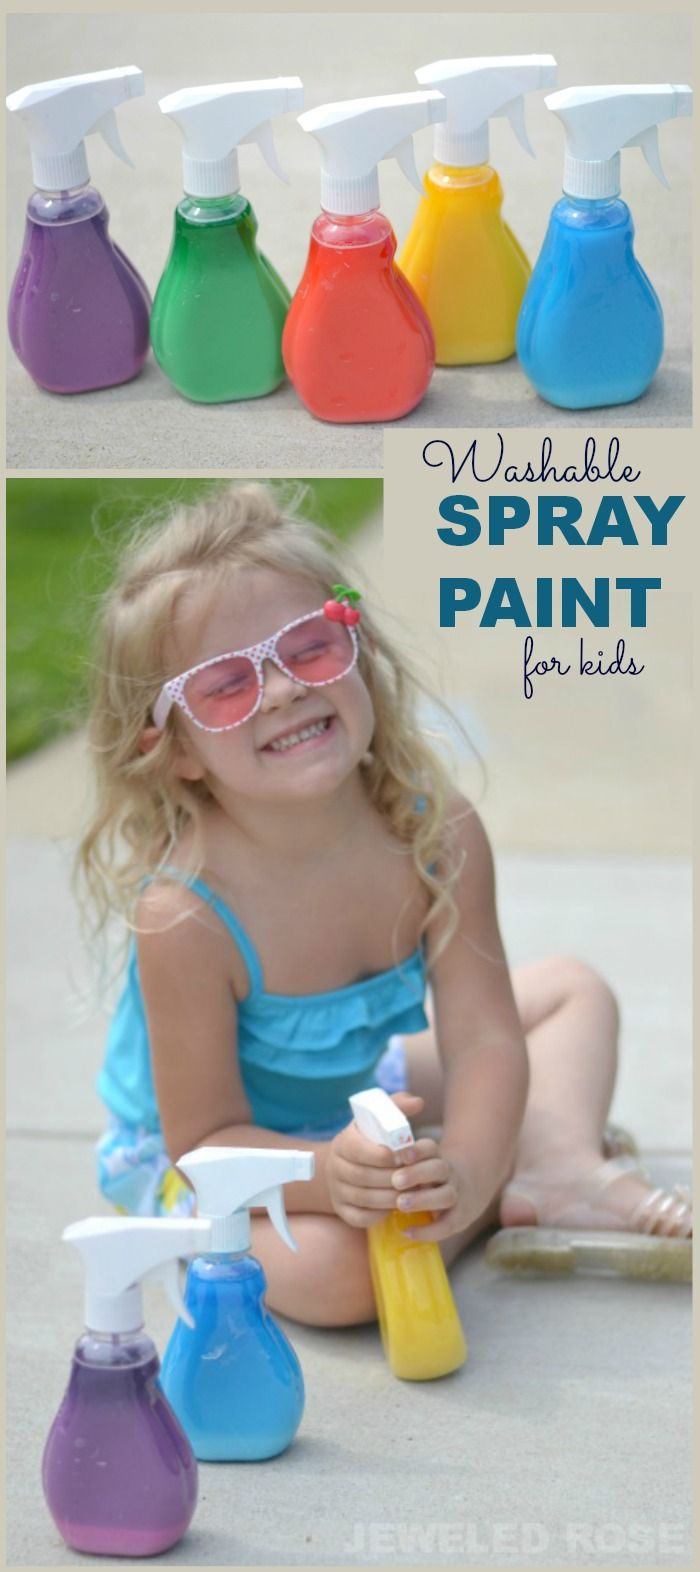 Washable spray paint for kids- what a fun way for kids to make art outside this Summer! Only takes seconds to make, too!